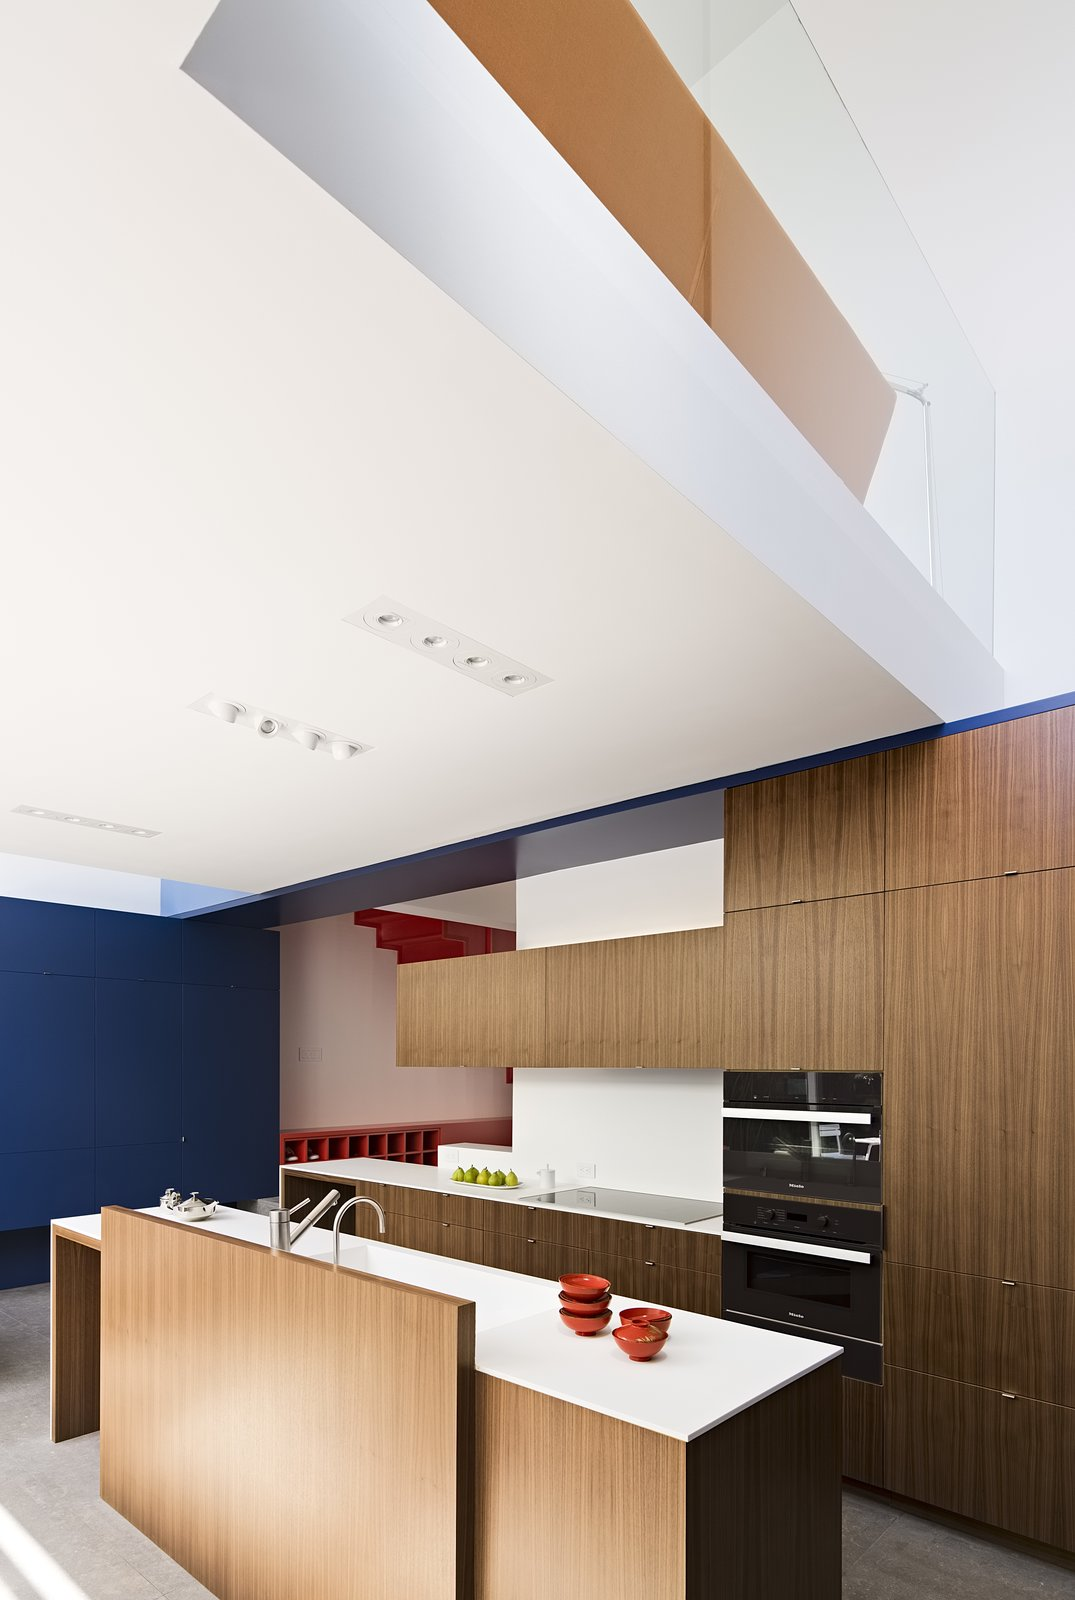 Custom cabinets by Myers Cabinetry have Corian countertops.